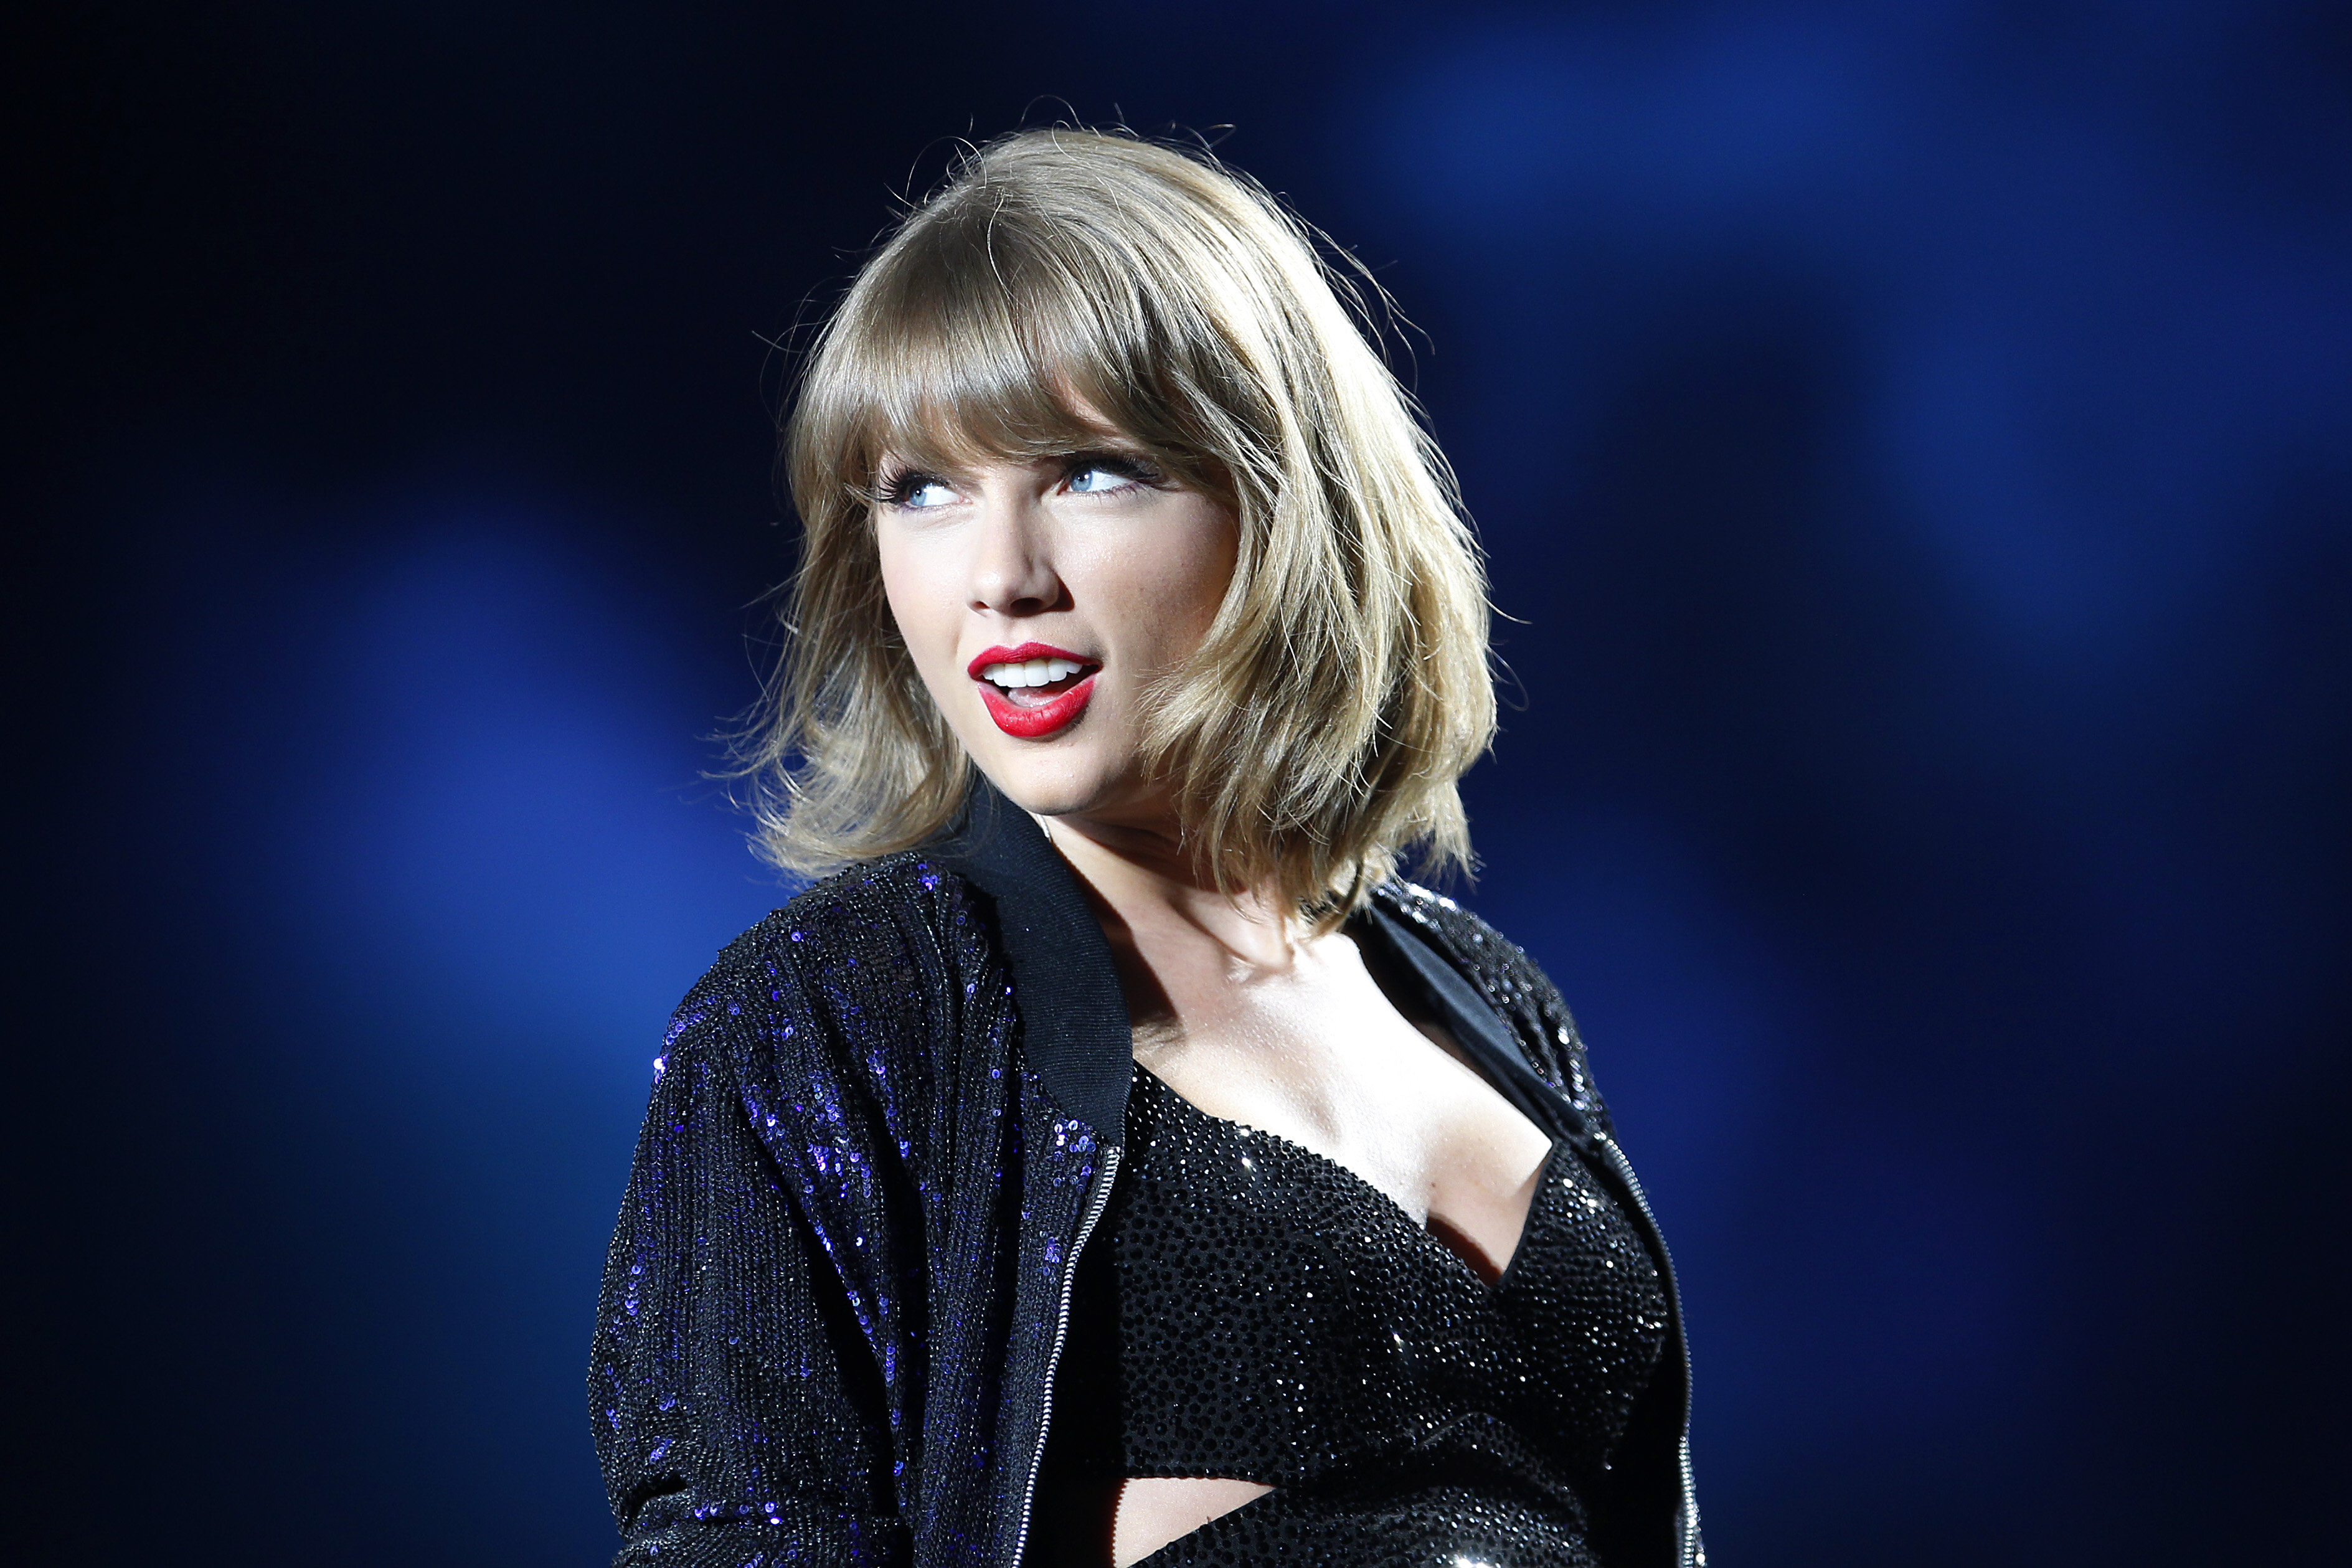 Taylor Swift performs during the  1989  world tour in San Diego on Aug. 29, 2015.